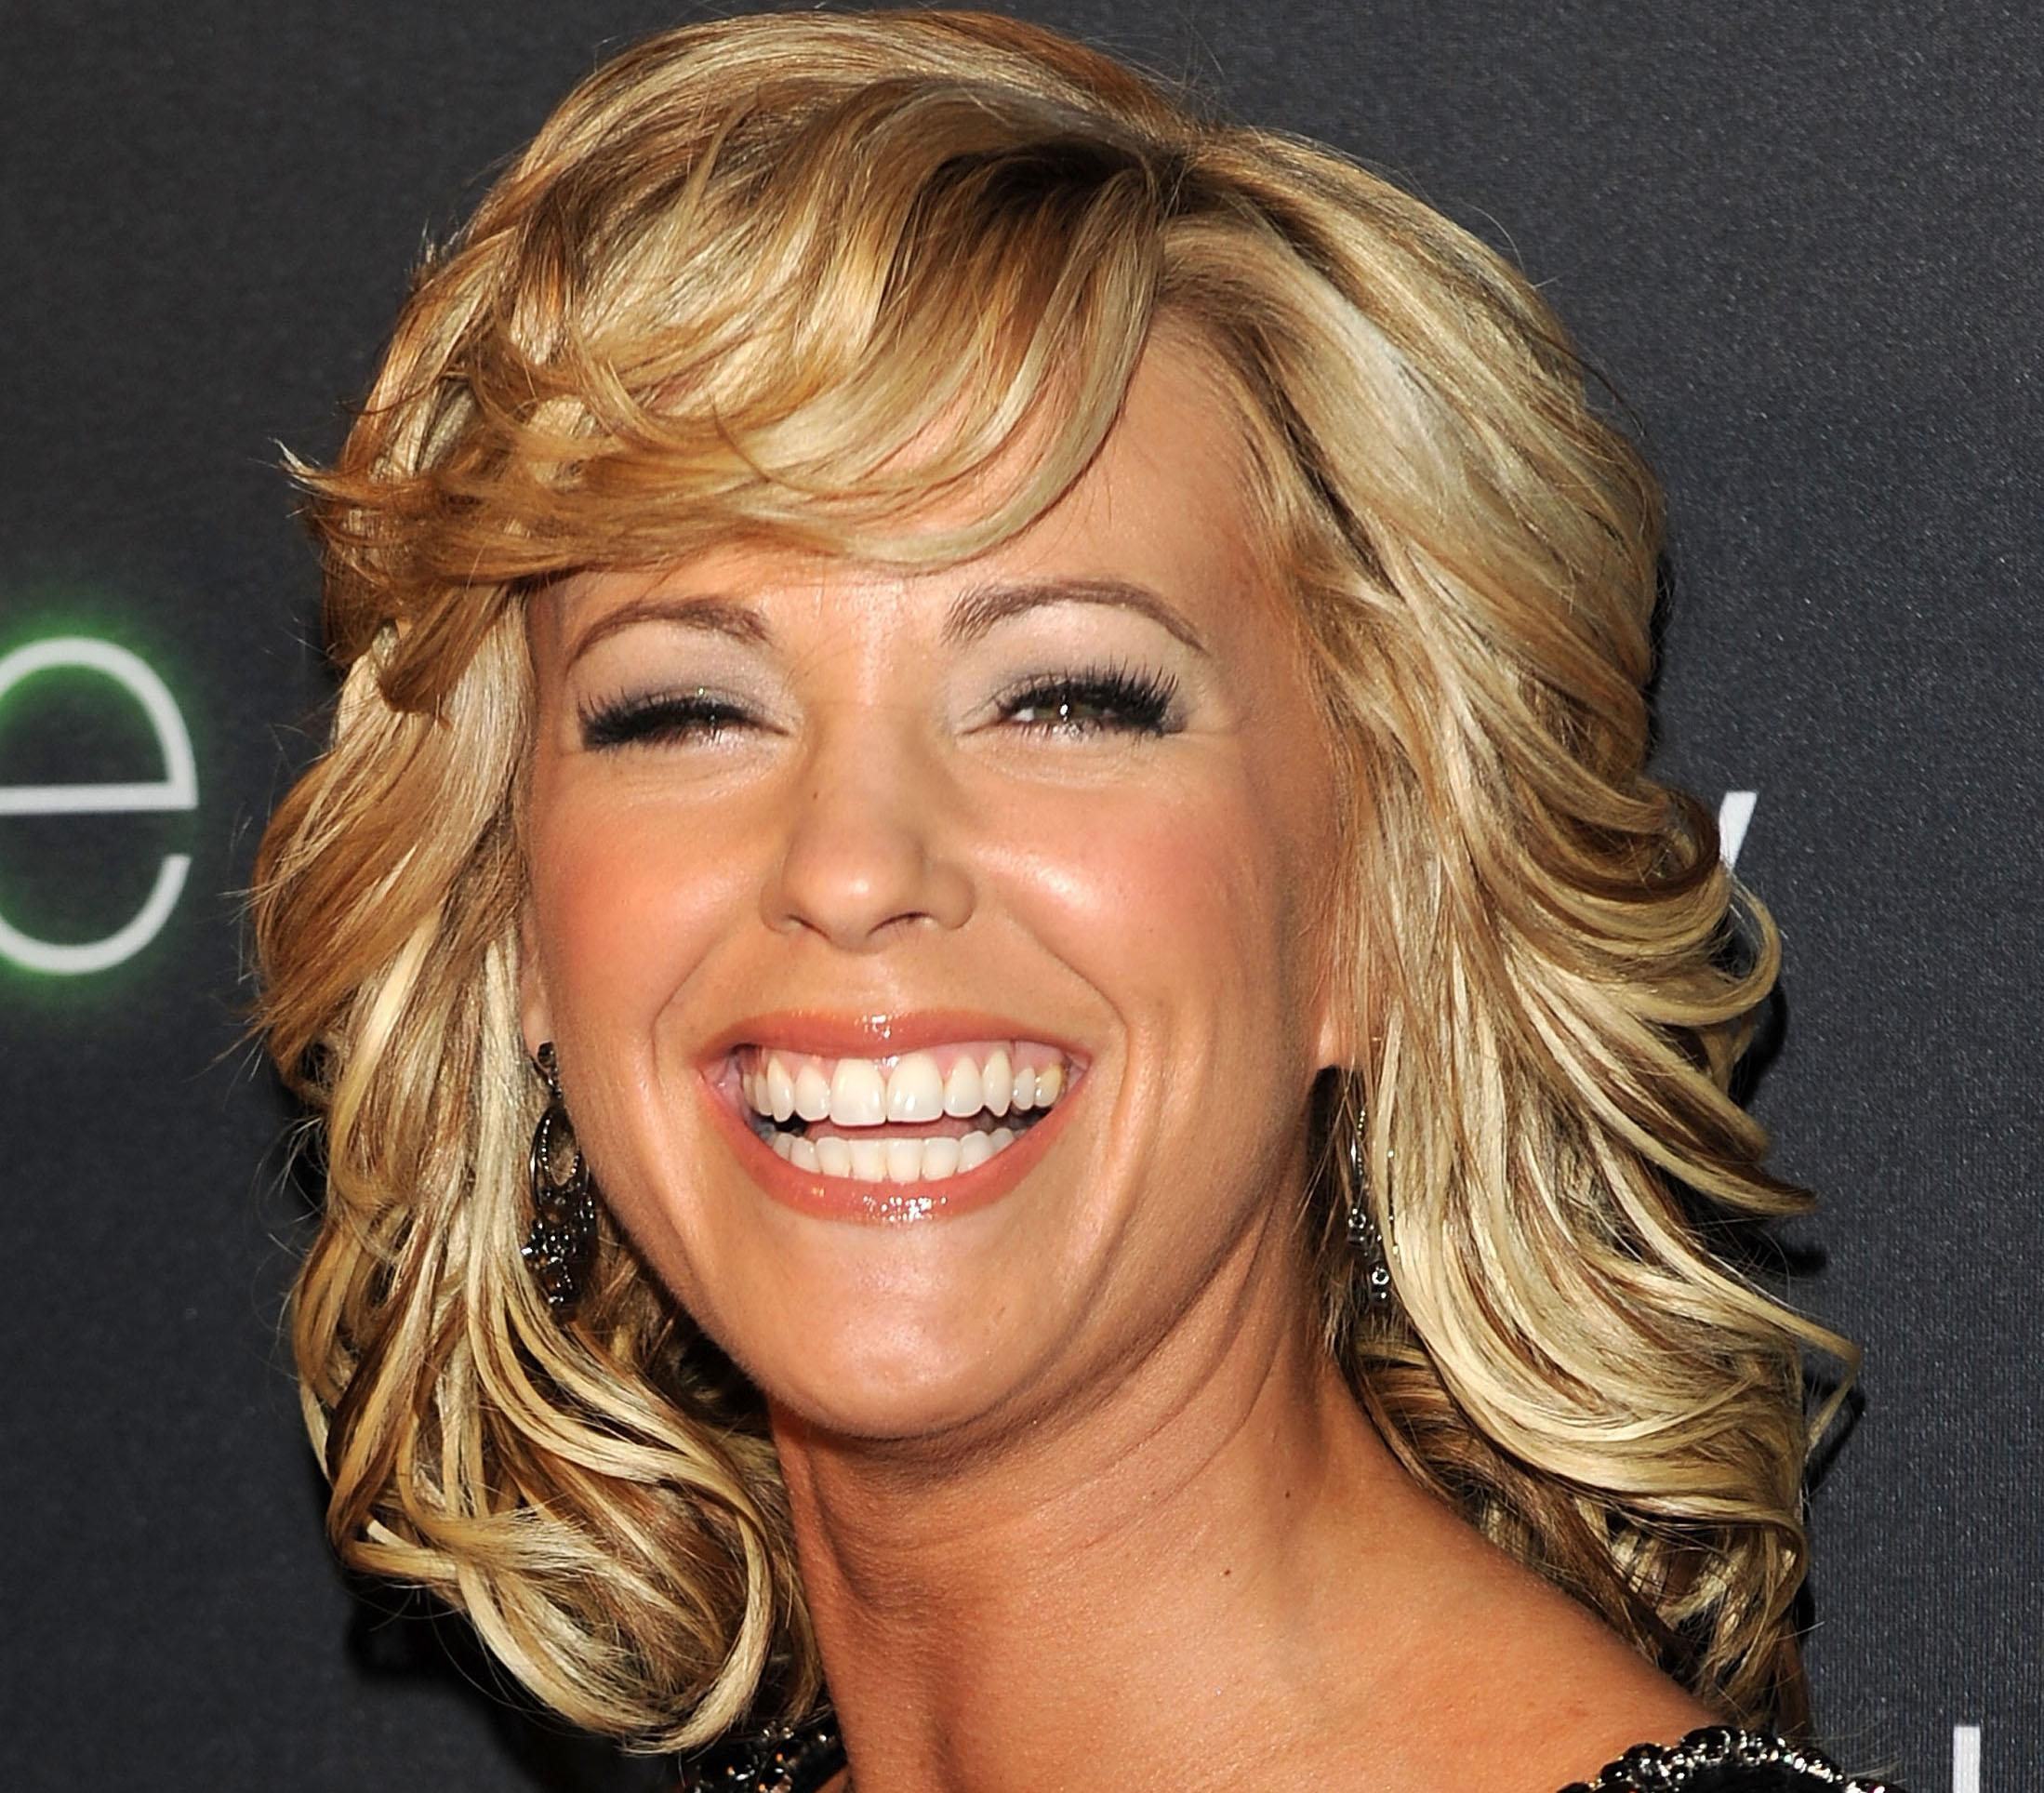 kate-gosselin-boyfriend-2019-1-1562625632417.jpg